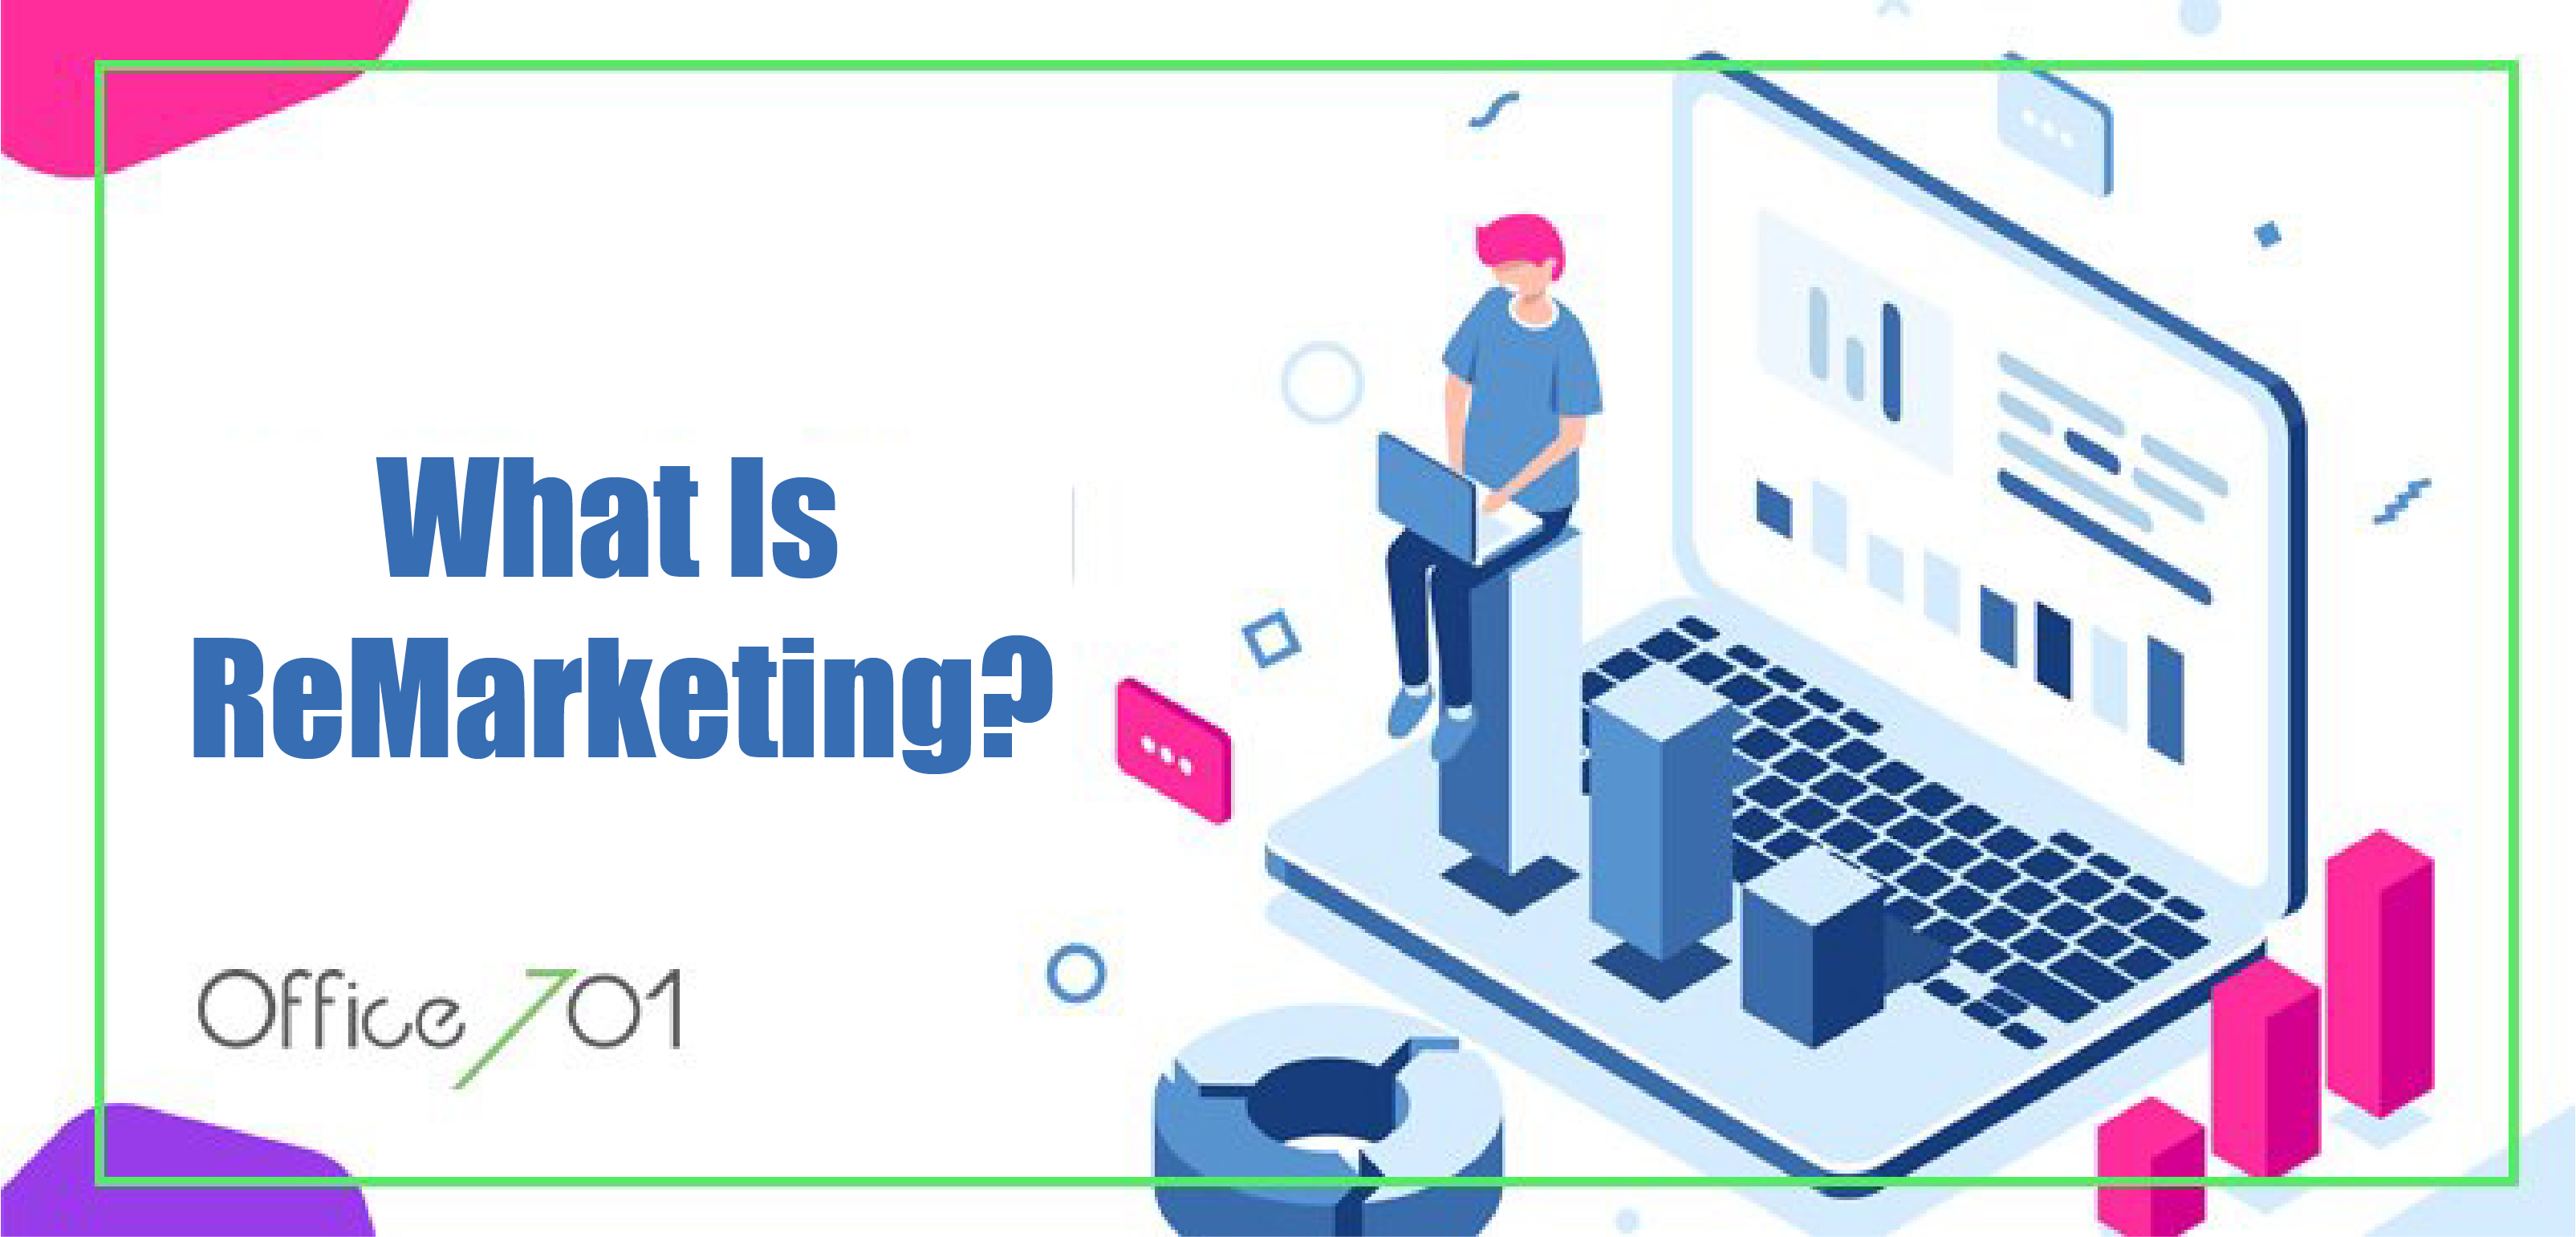 Office701 | WHAT IS REMARKETING? WHAT IS IT USED FOR?